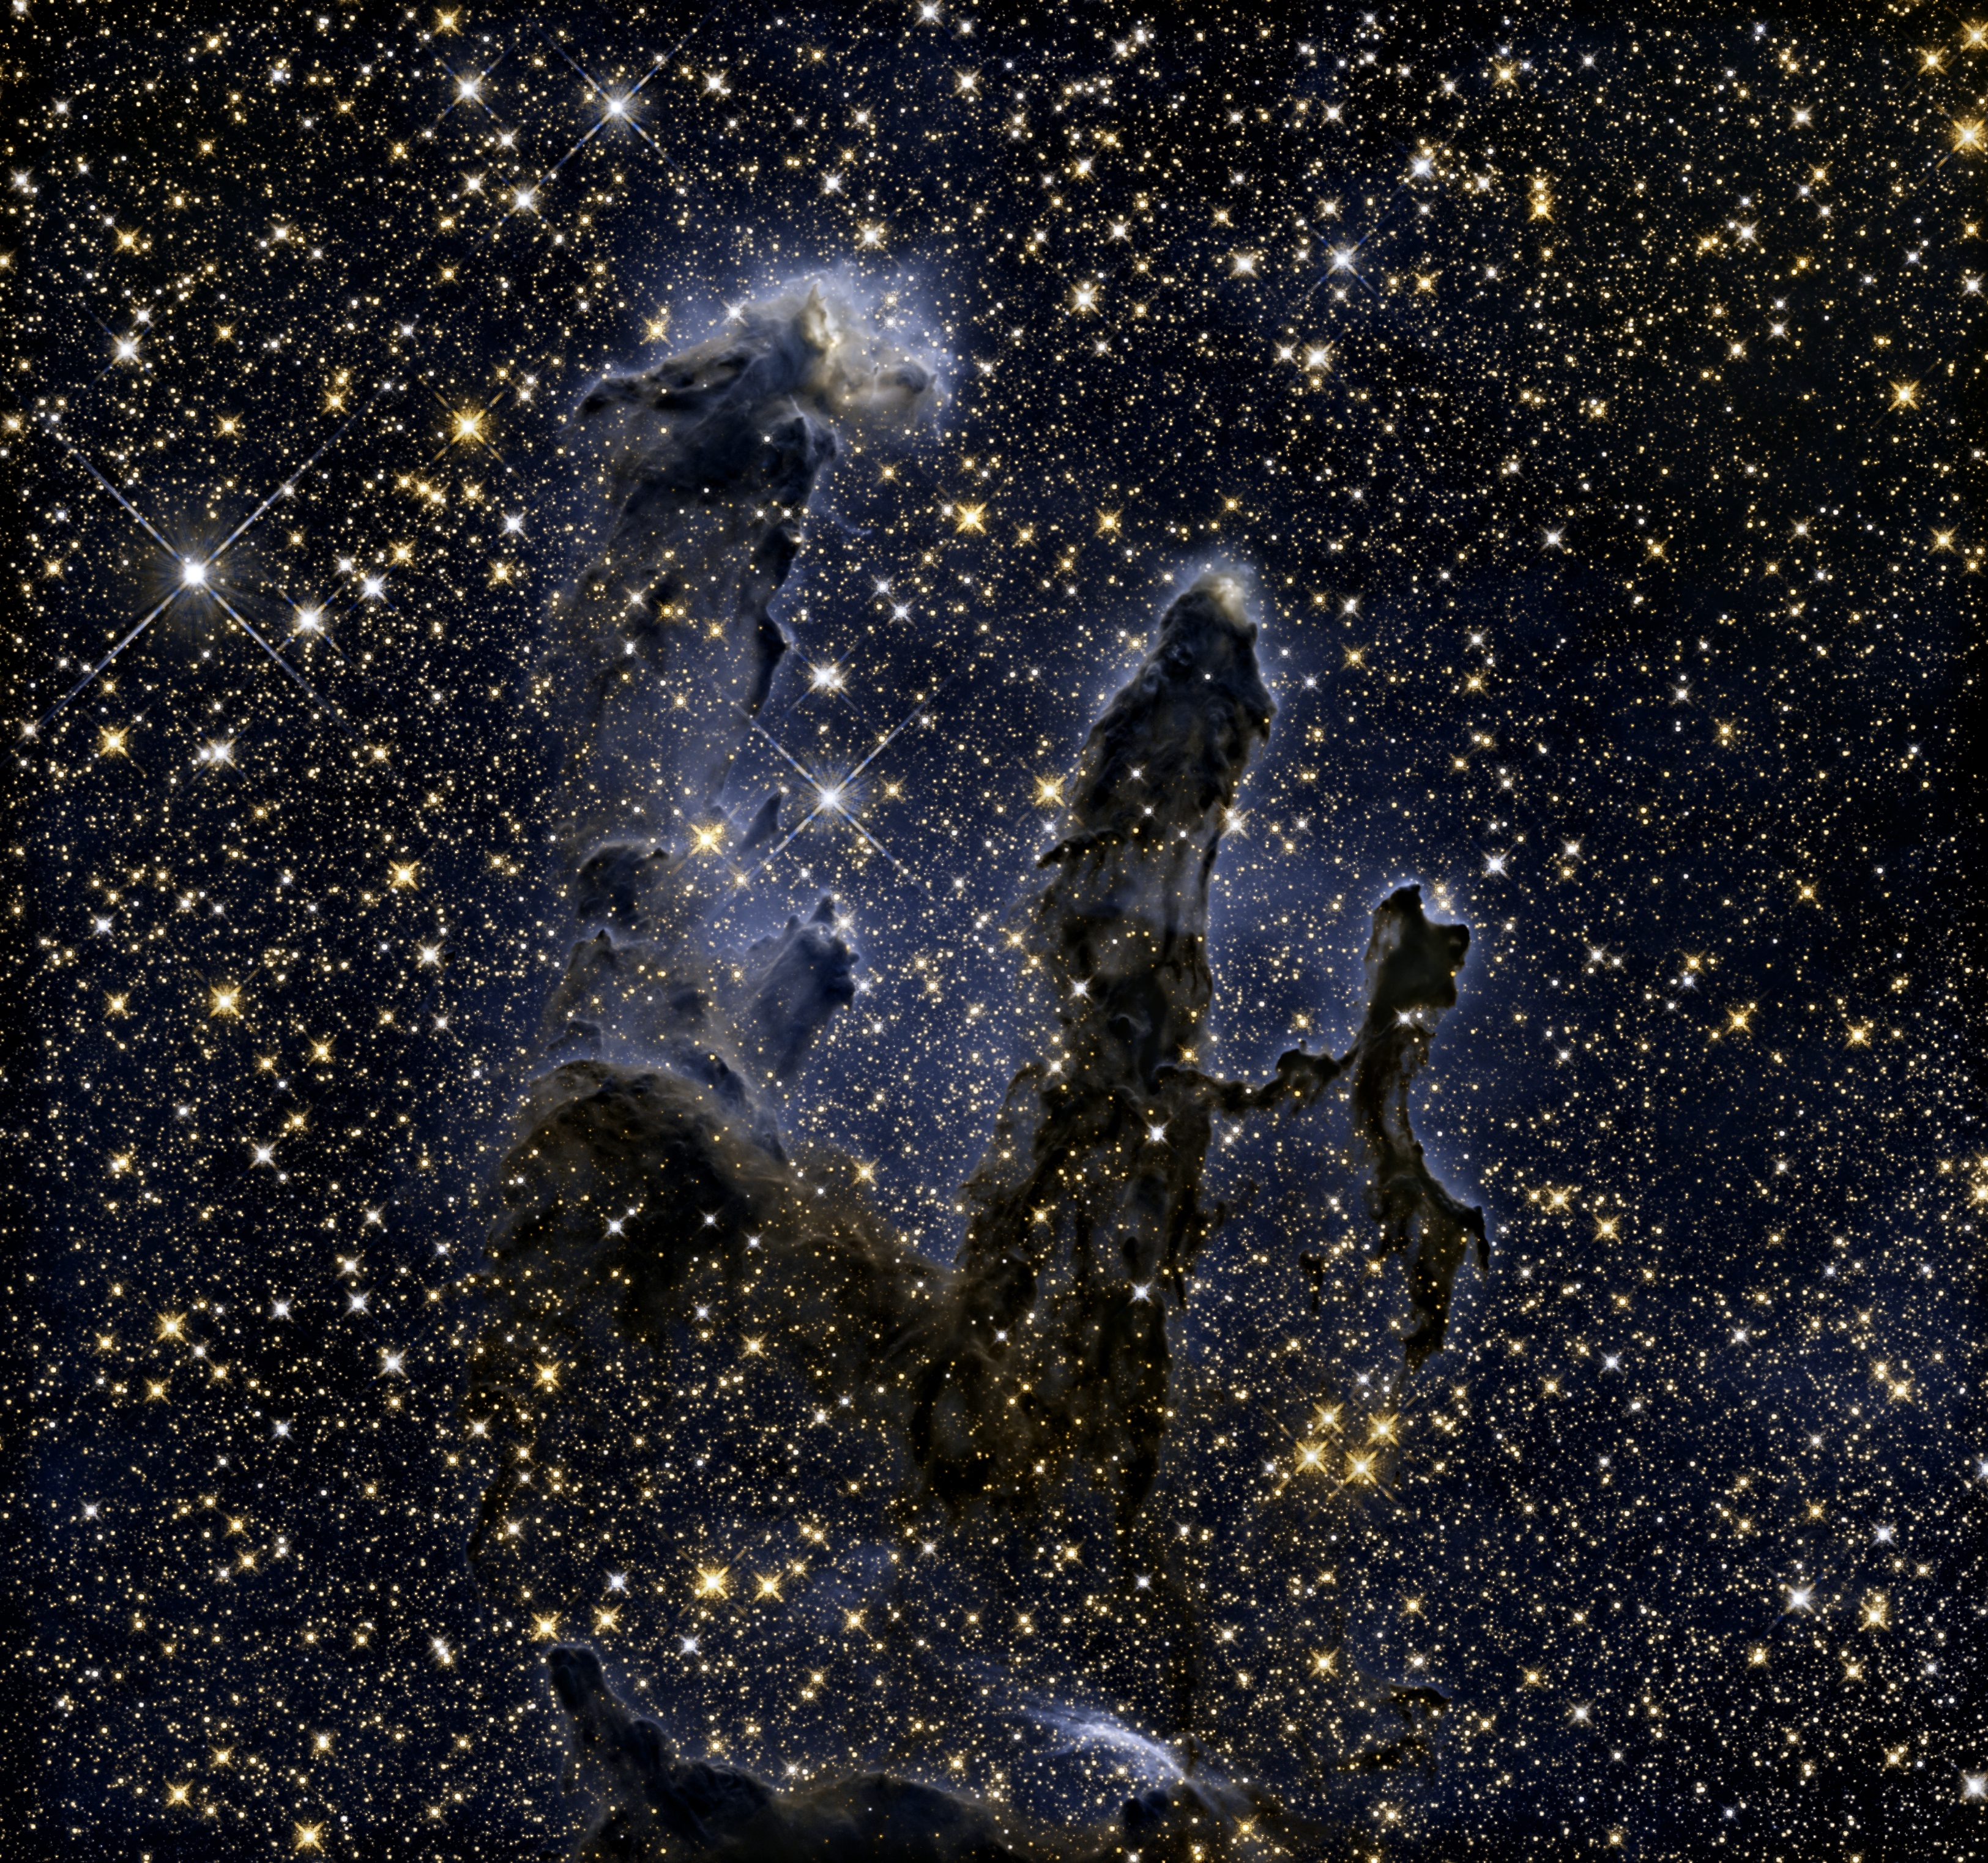 The Hubble Space Telescope revisits one of its most iconic and popular images: the Eagle Nebula's Pillars of Creation. This image shows the formation as seen in infrared light, which gives the familiar pillars an unfamiliar look.  The image was released in January 2015.